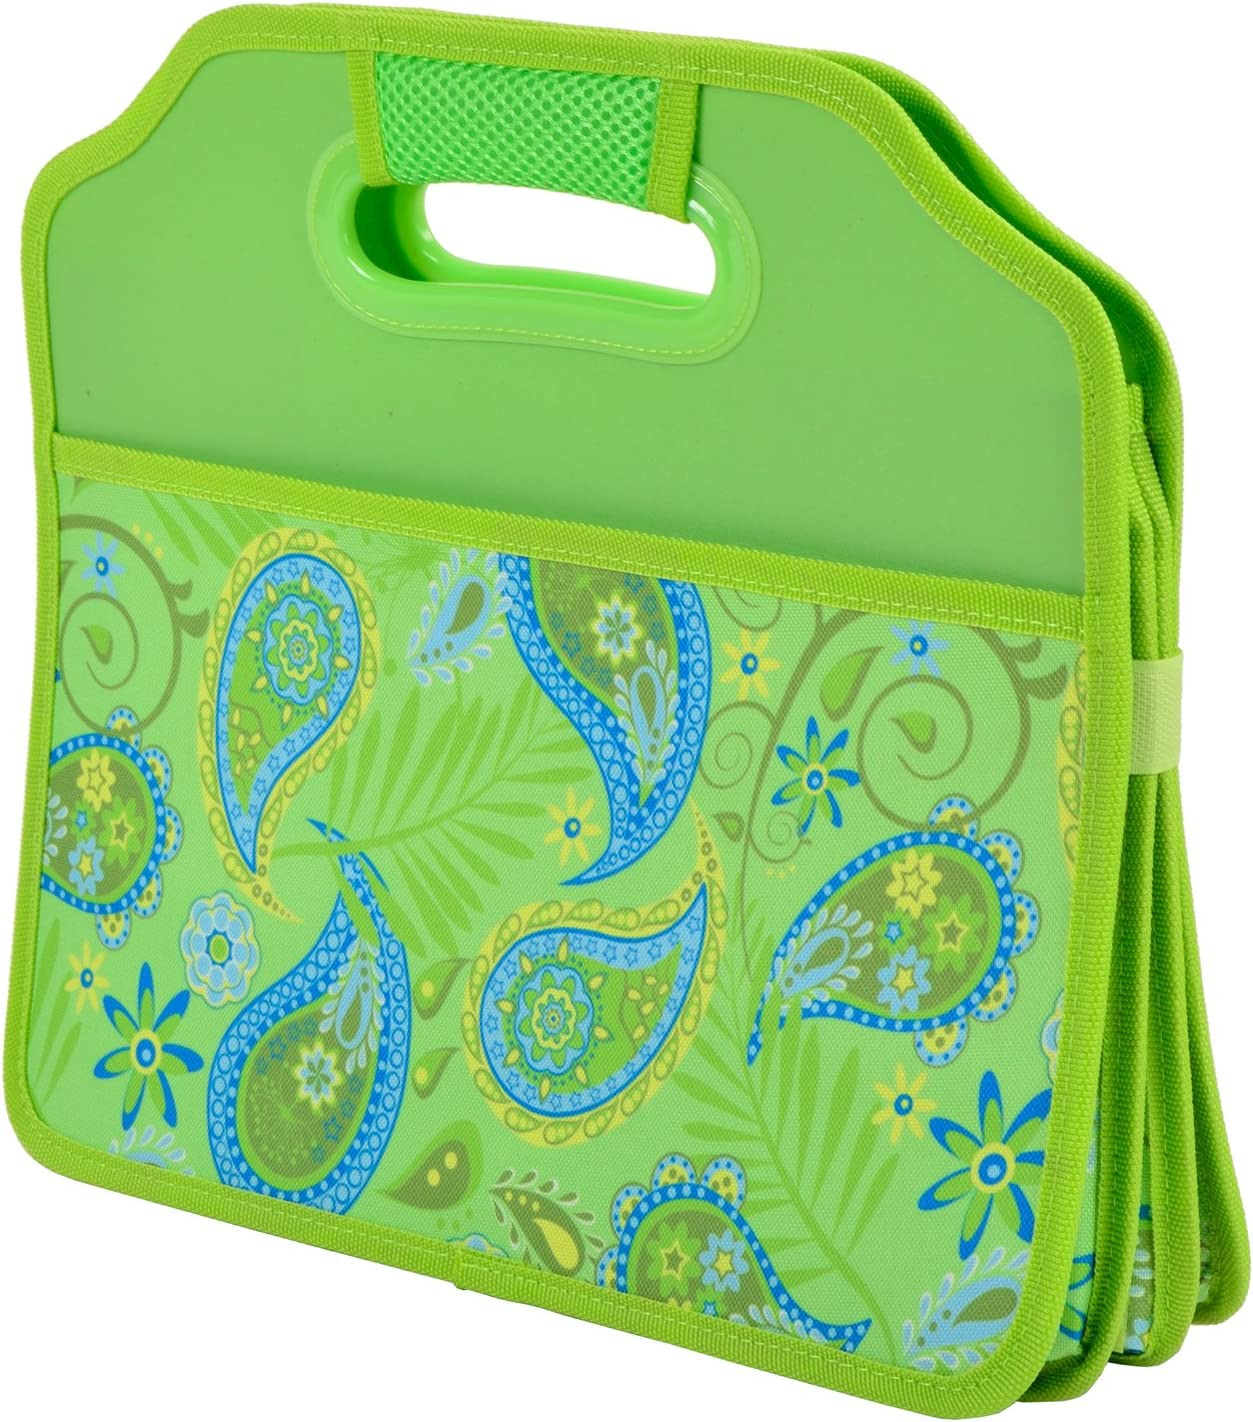 Picnic at Ascot 3 Section Folding Trunk Organizer Designed /& Quality Approved in the USA